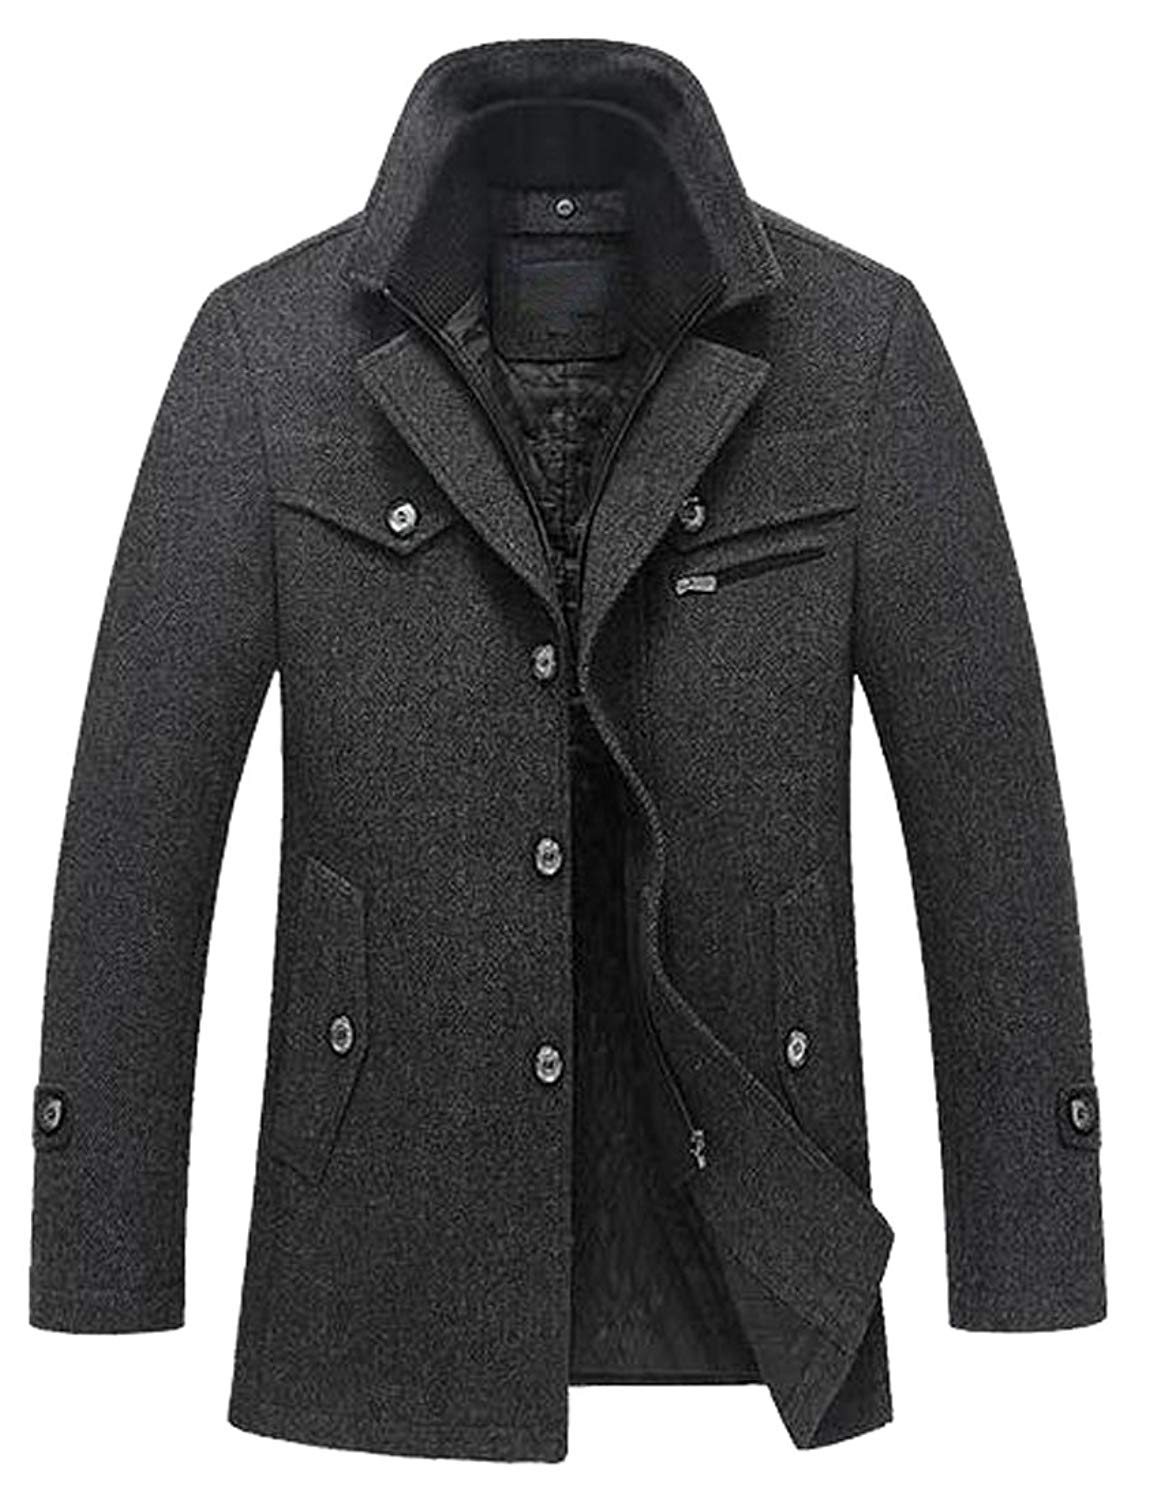 Pandapang Mens Winter Cotton-Padded Warm Spell Color Hooded Parkas Coat